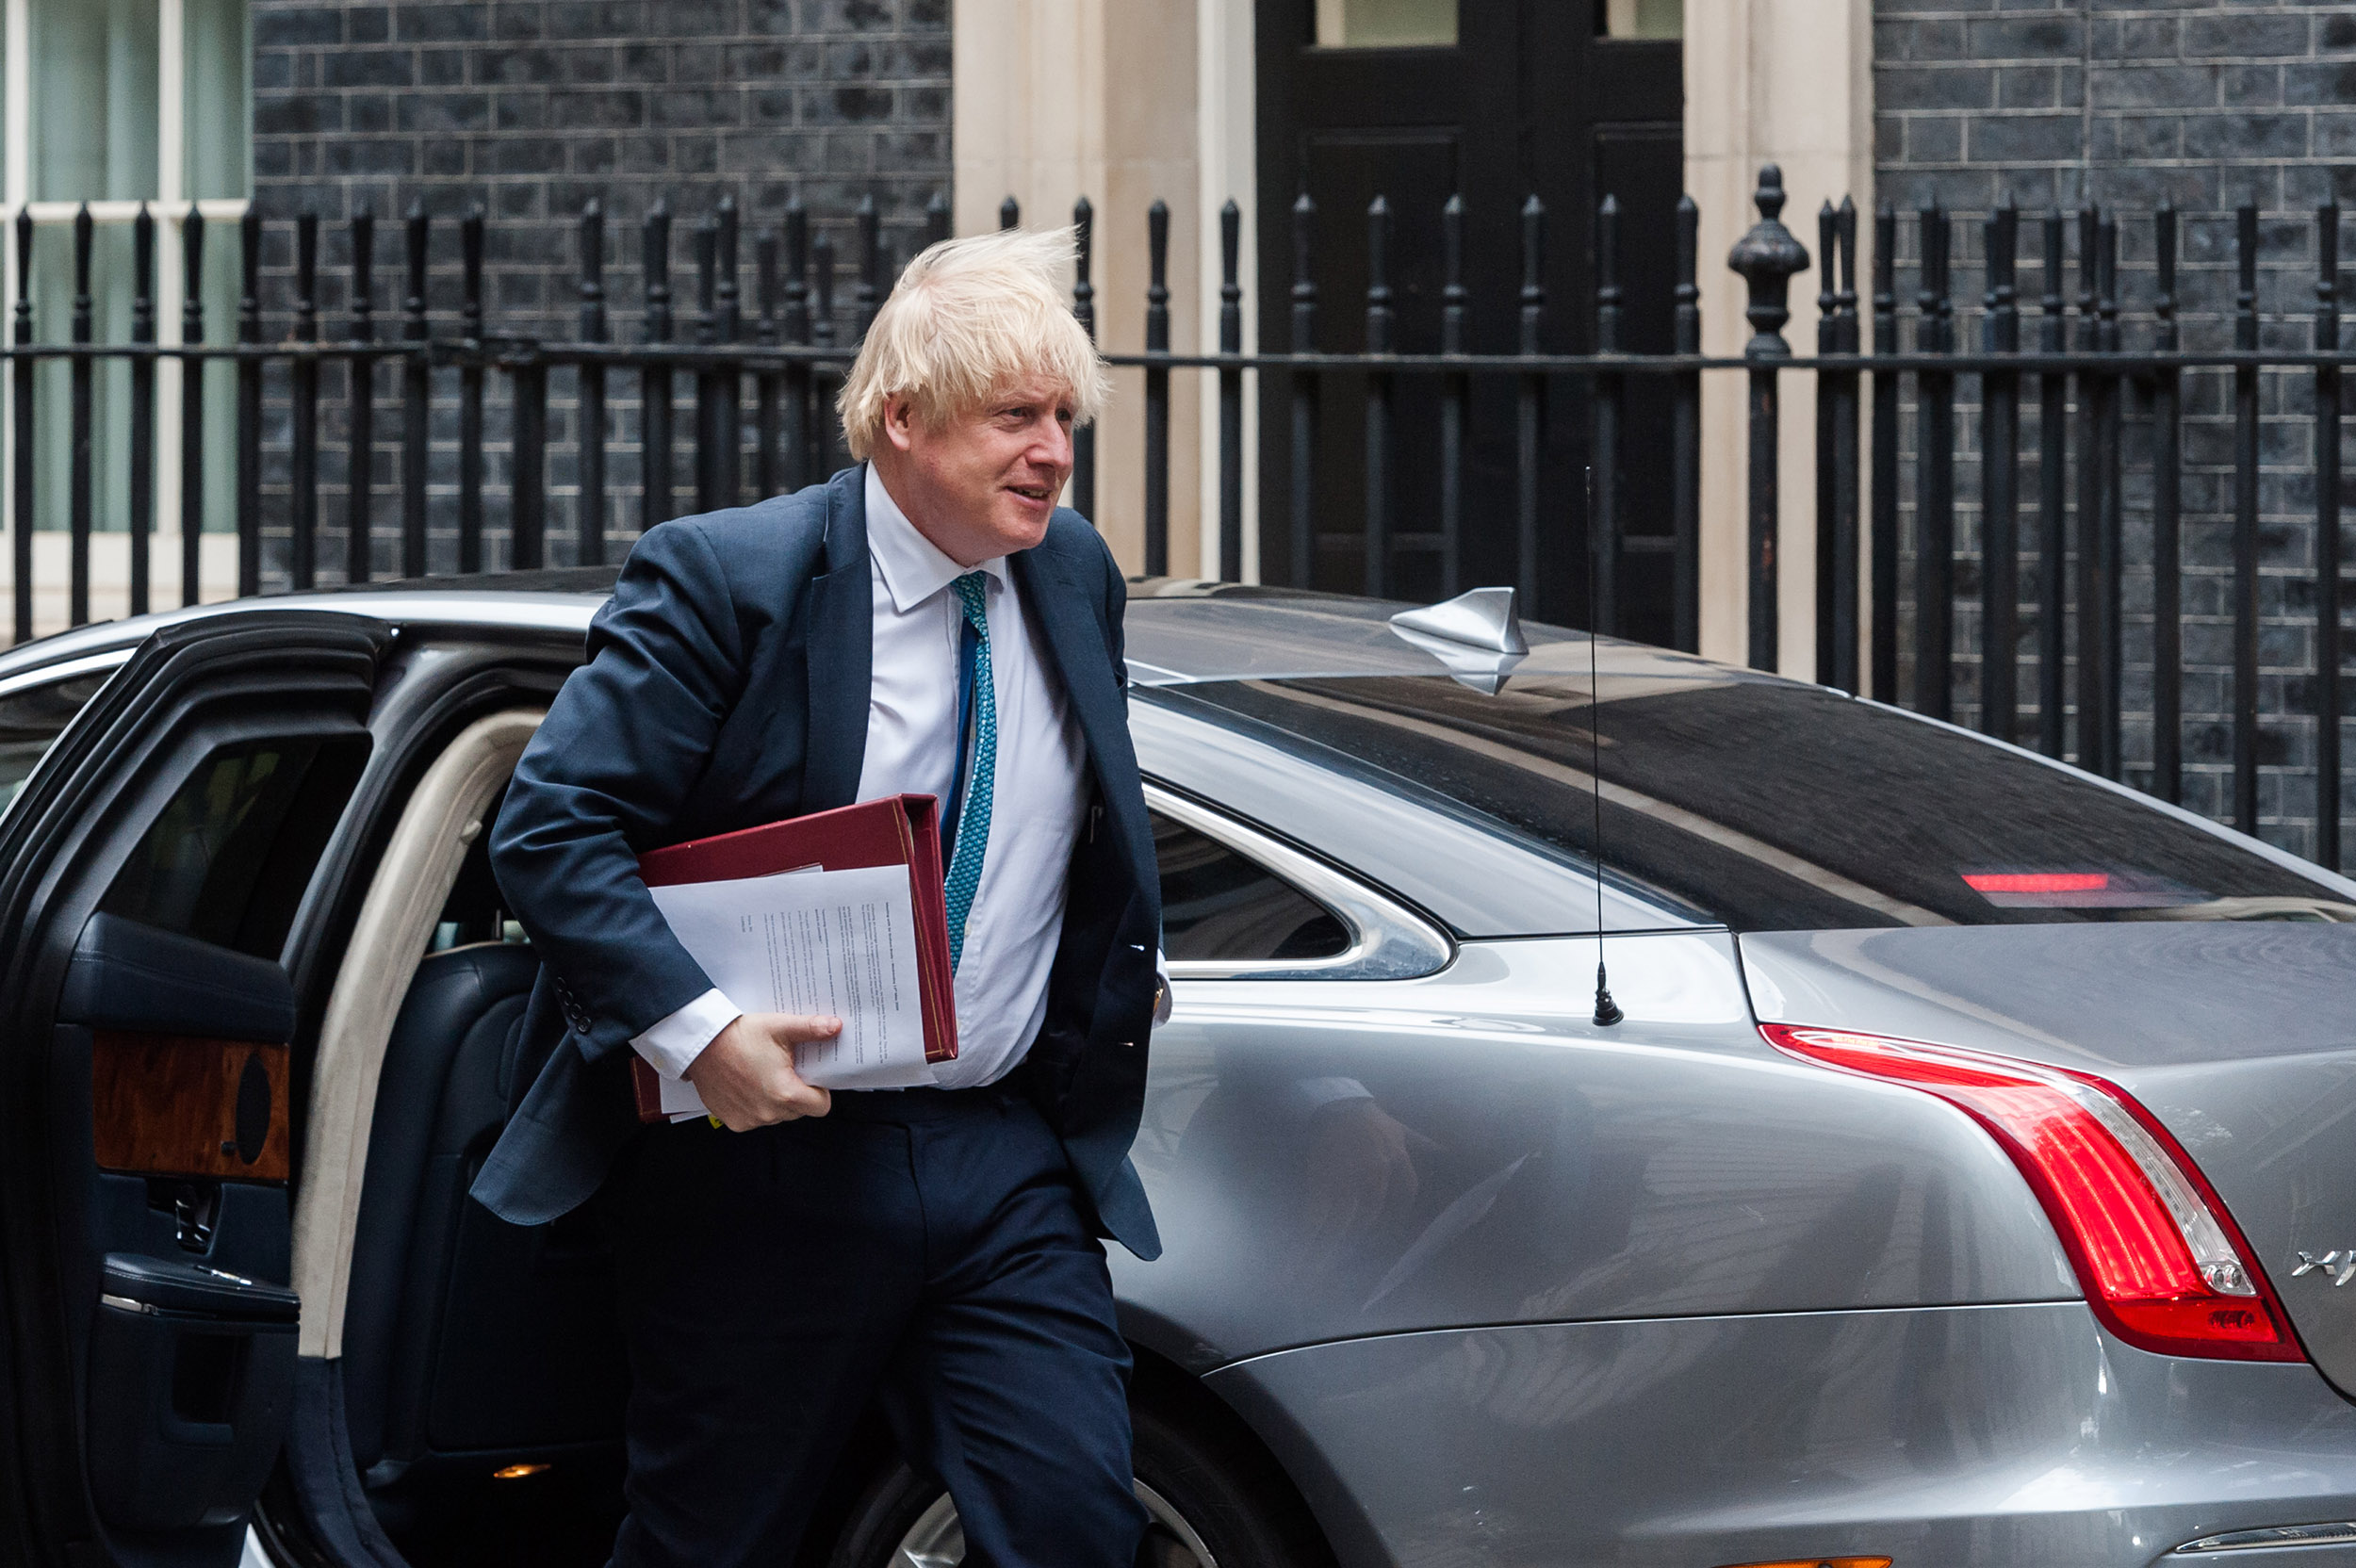 British Prime Minister Boris Johnson arrives on Downing Street after leaving the House of Commons in London, England, on Wednesday, May 13.